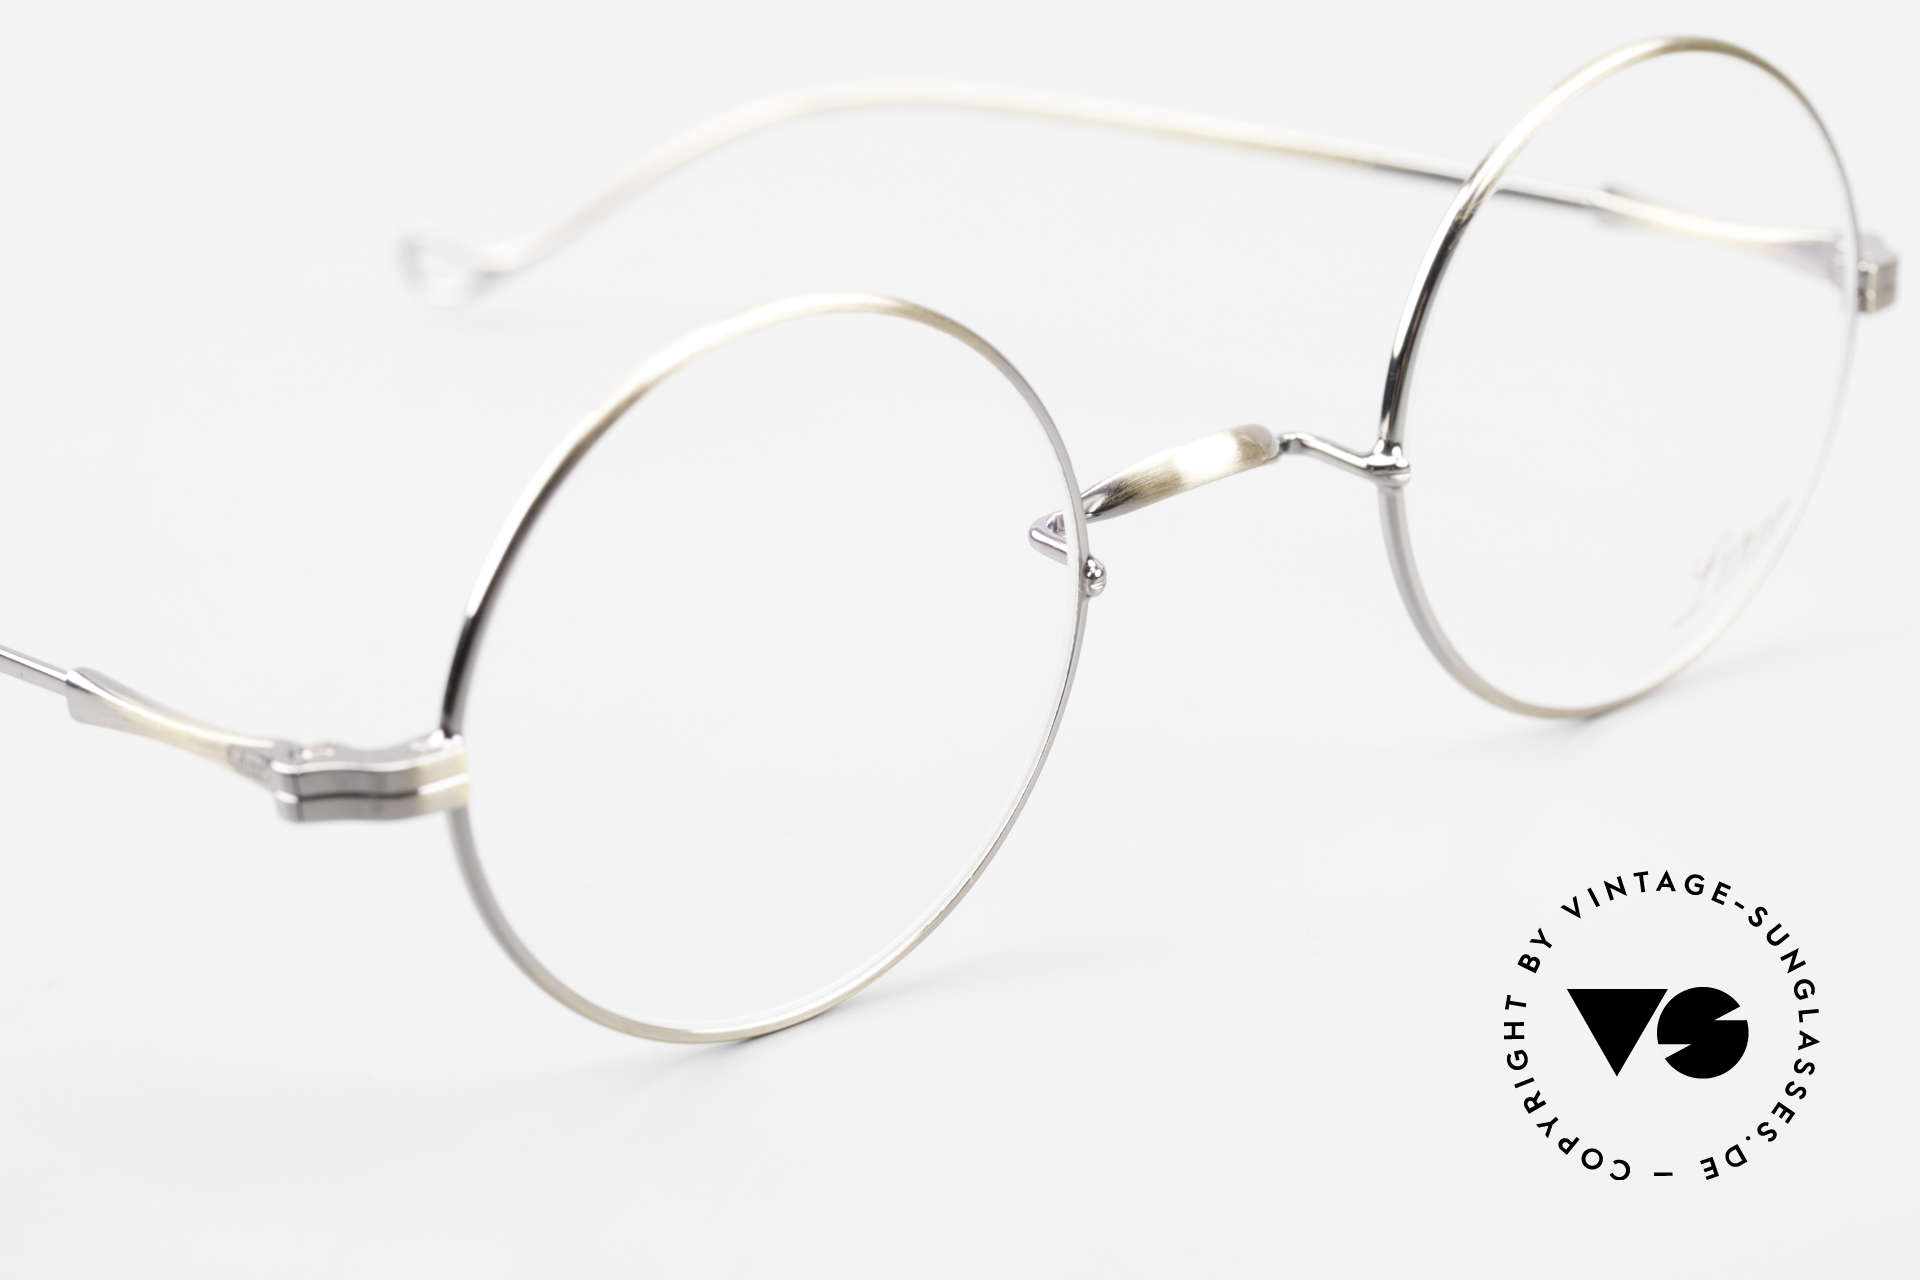 Lunor II 23 Round Lunor Eyeglass-Frame, a timeless, unworn RARITY for all lovers of quality, Made for Men and Women